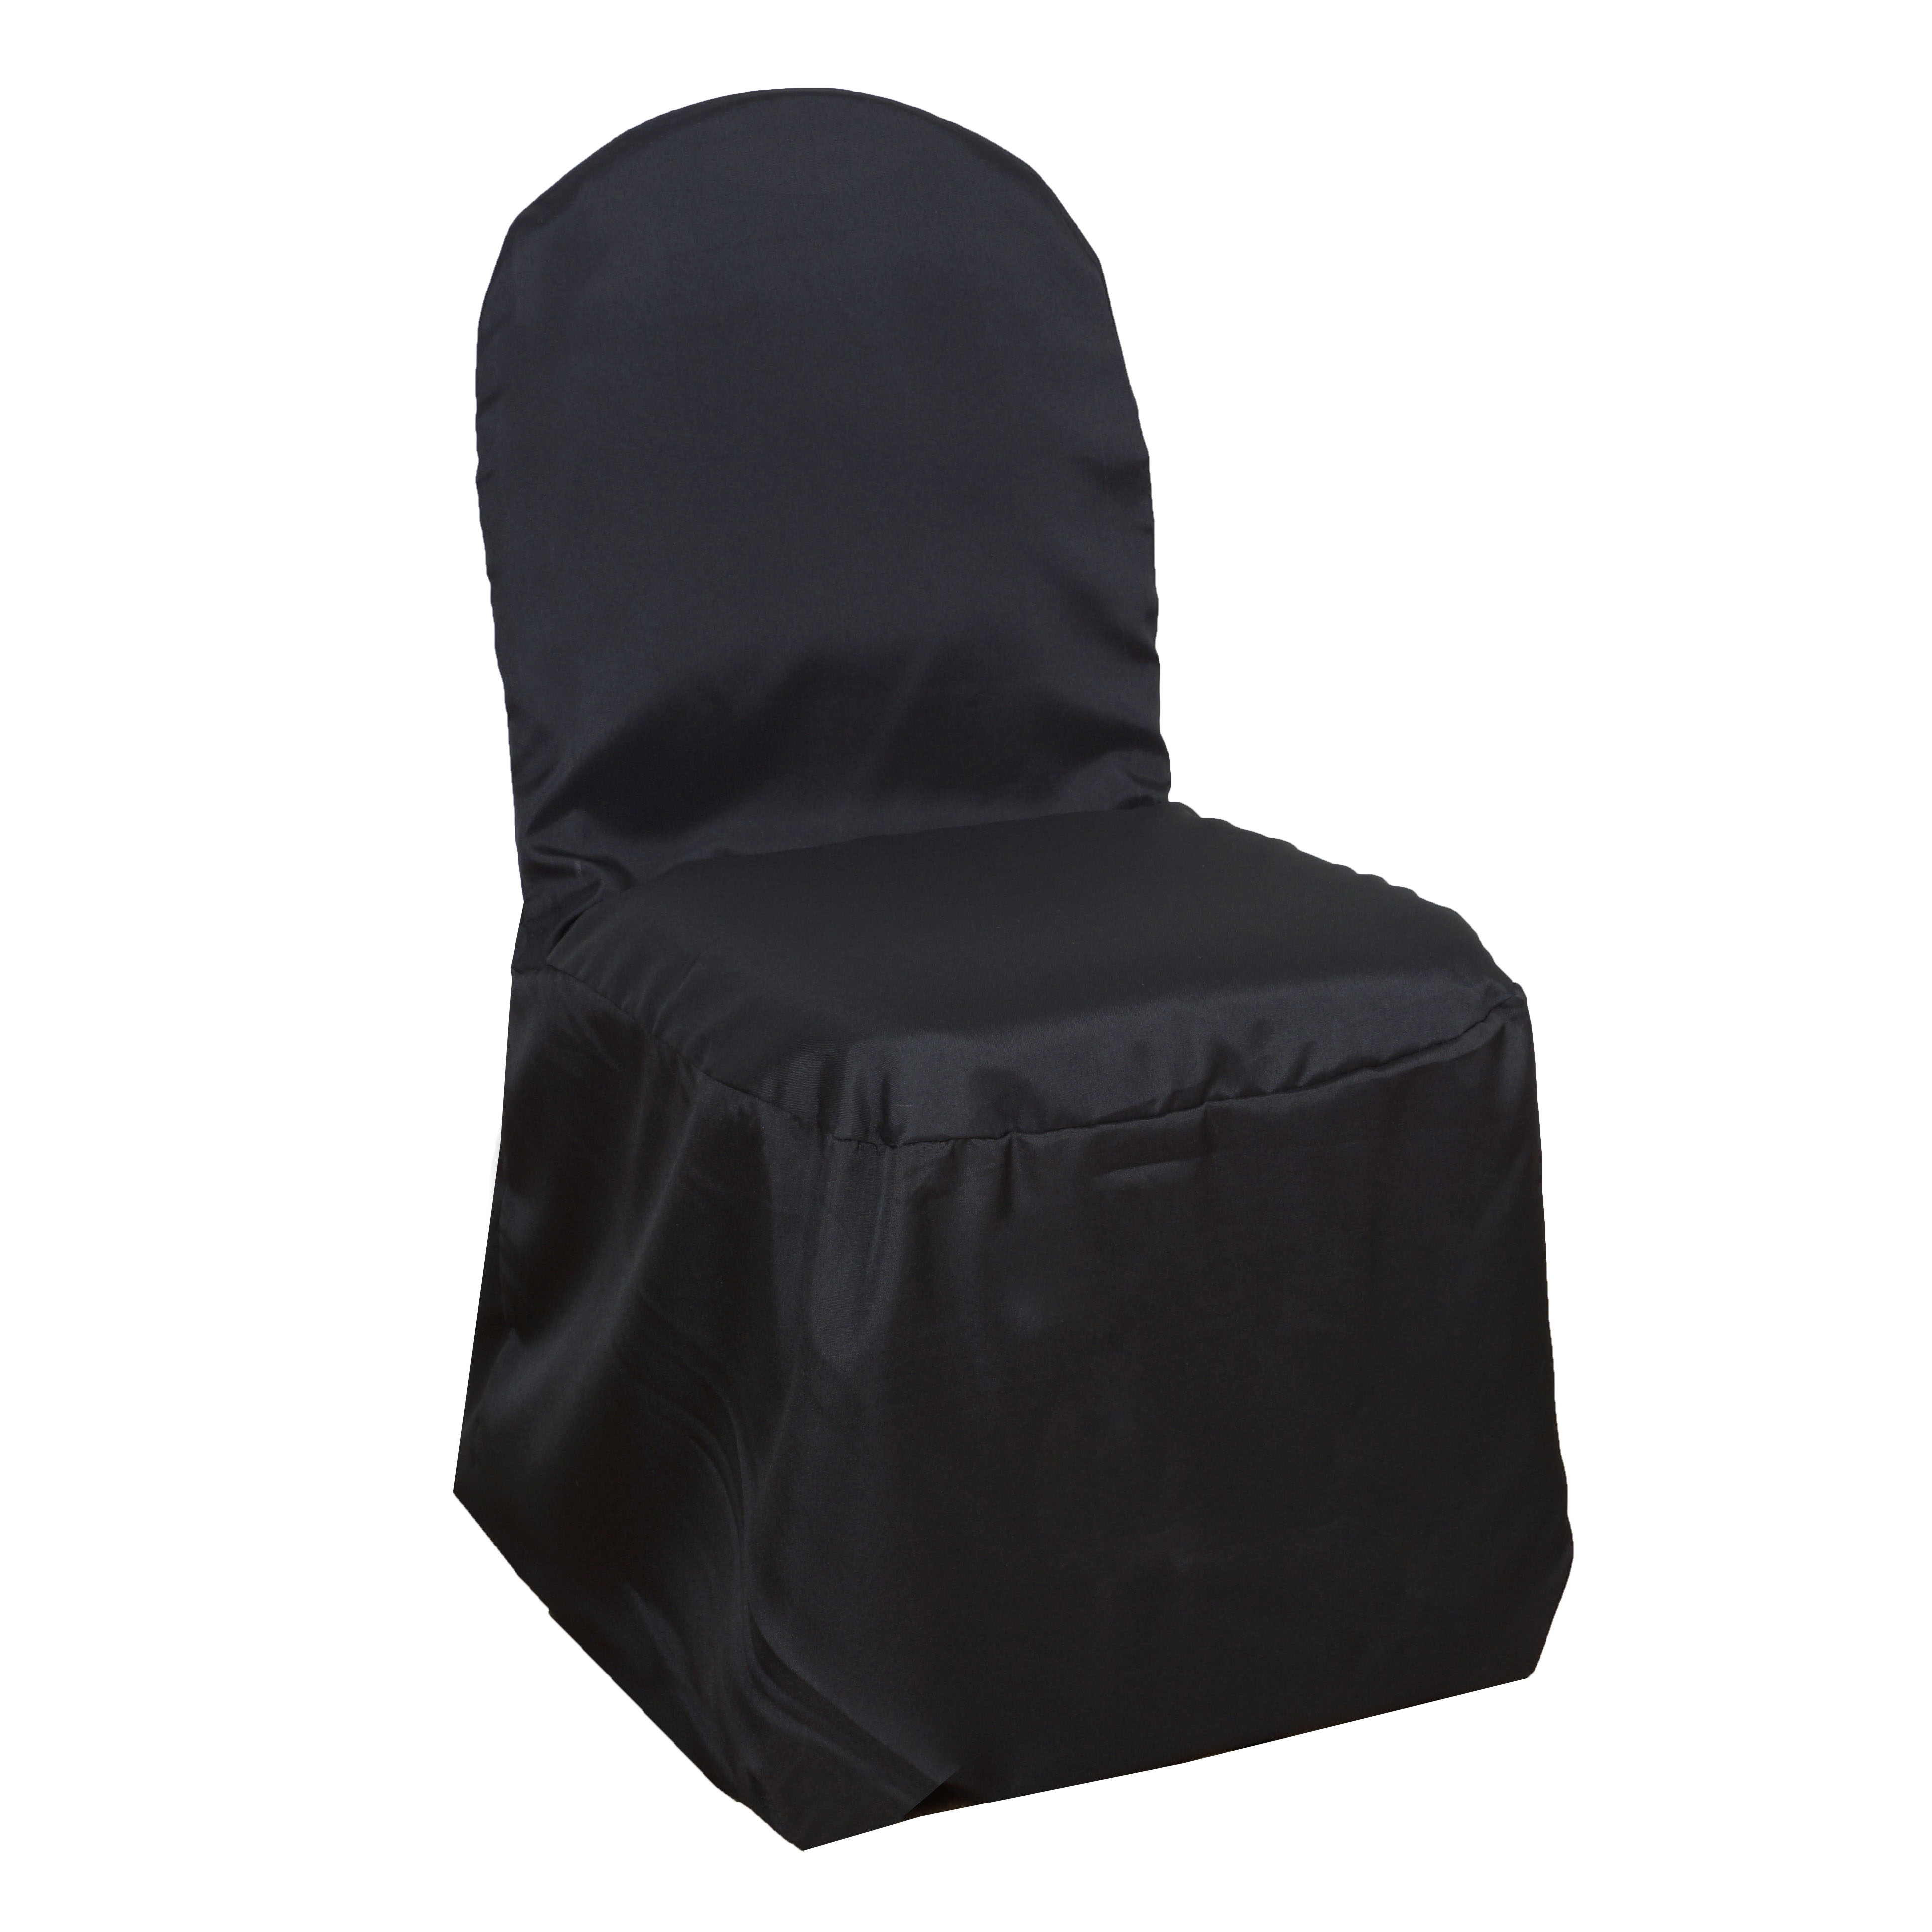 100 Black Polyester Banquet Chair Covers Wedding Ceremony Supplies Event Decor Ebay